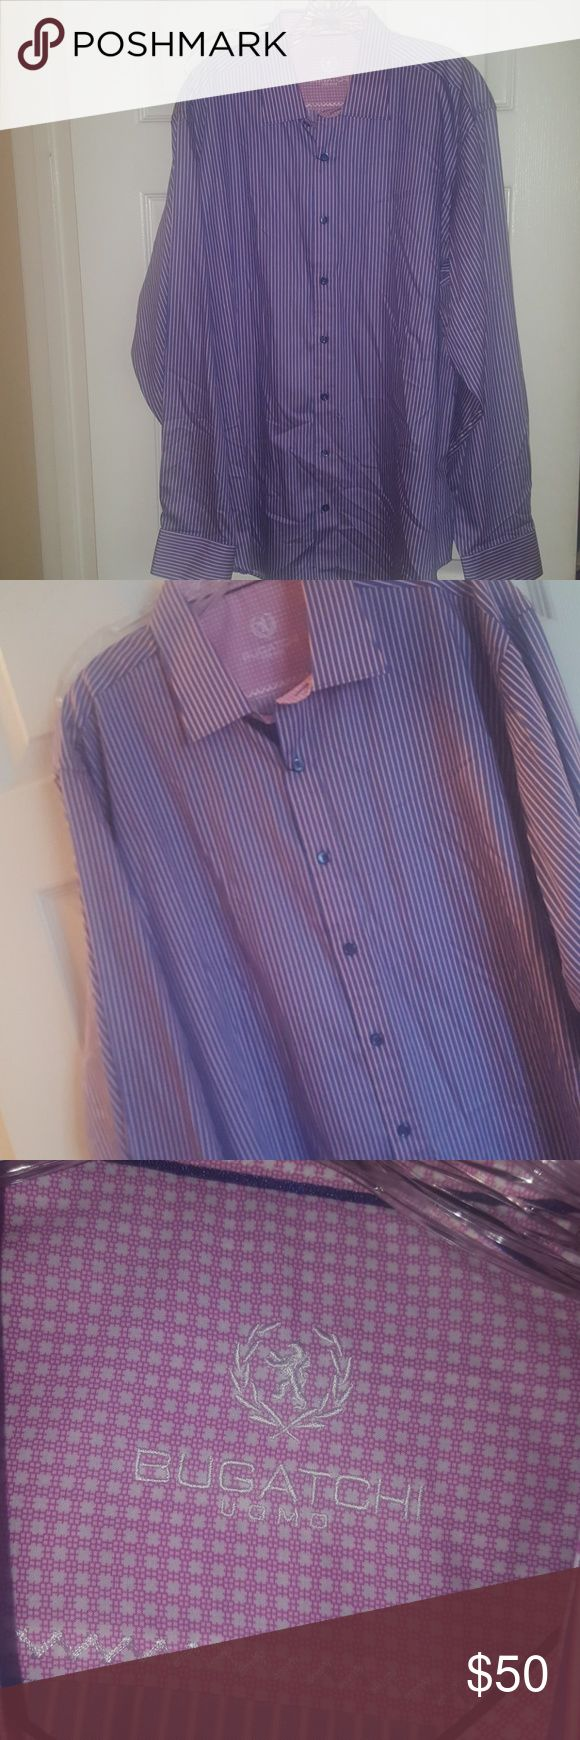 Mens Dress Shirt BRAND NEW WITH TAGS Mens Bugatchi Brand New  Dress shirt with tags attached. Never worn. Beautiful color and feel Bugatchi Shirts Dress Shirts